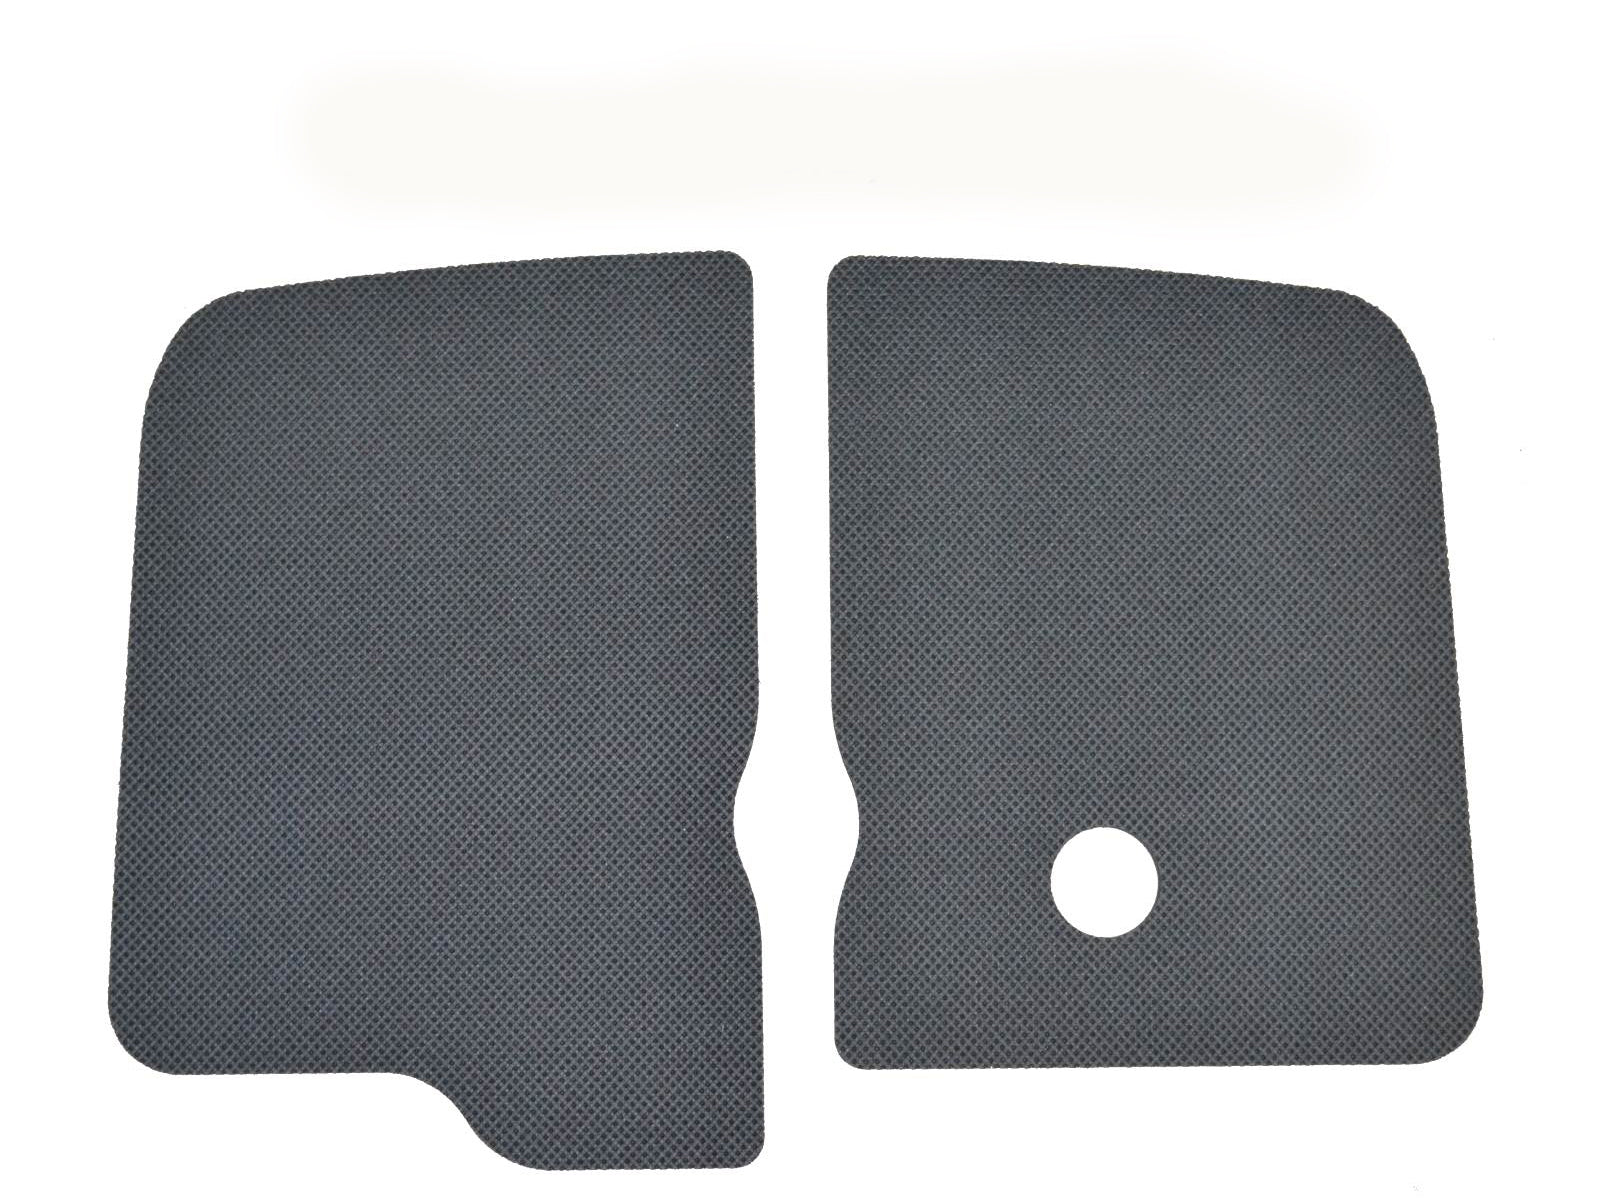 Porsche 924 944 Under bonnet Insulation mats for pre 88 cars.  477 863 771 - Porsche Spares UK Ltd